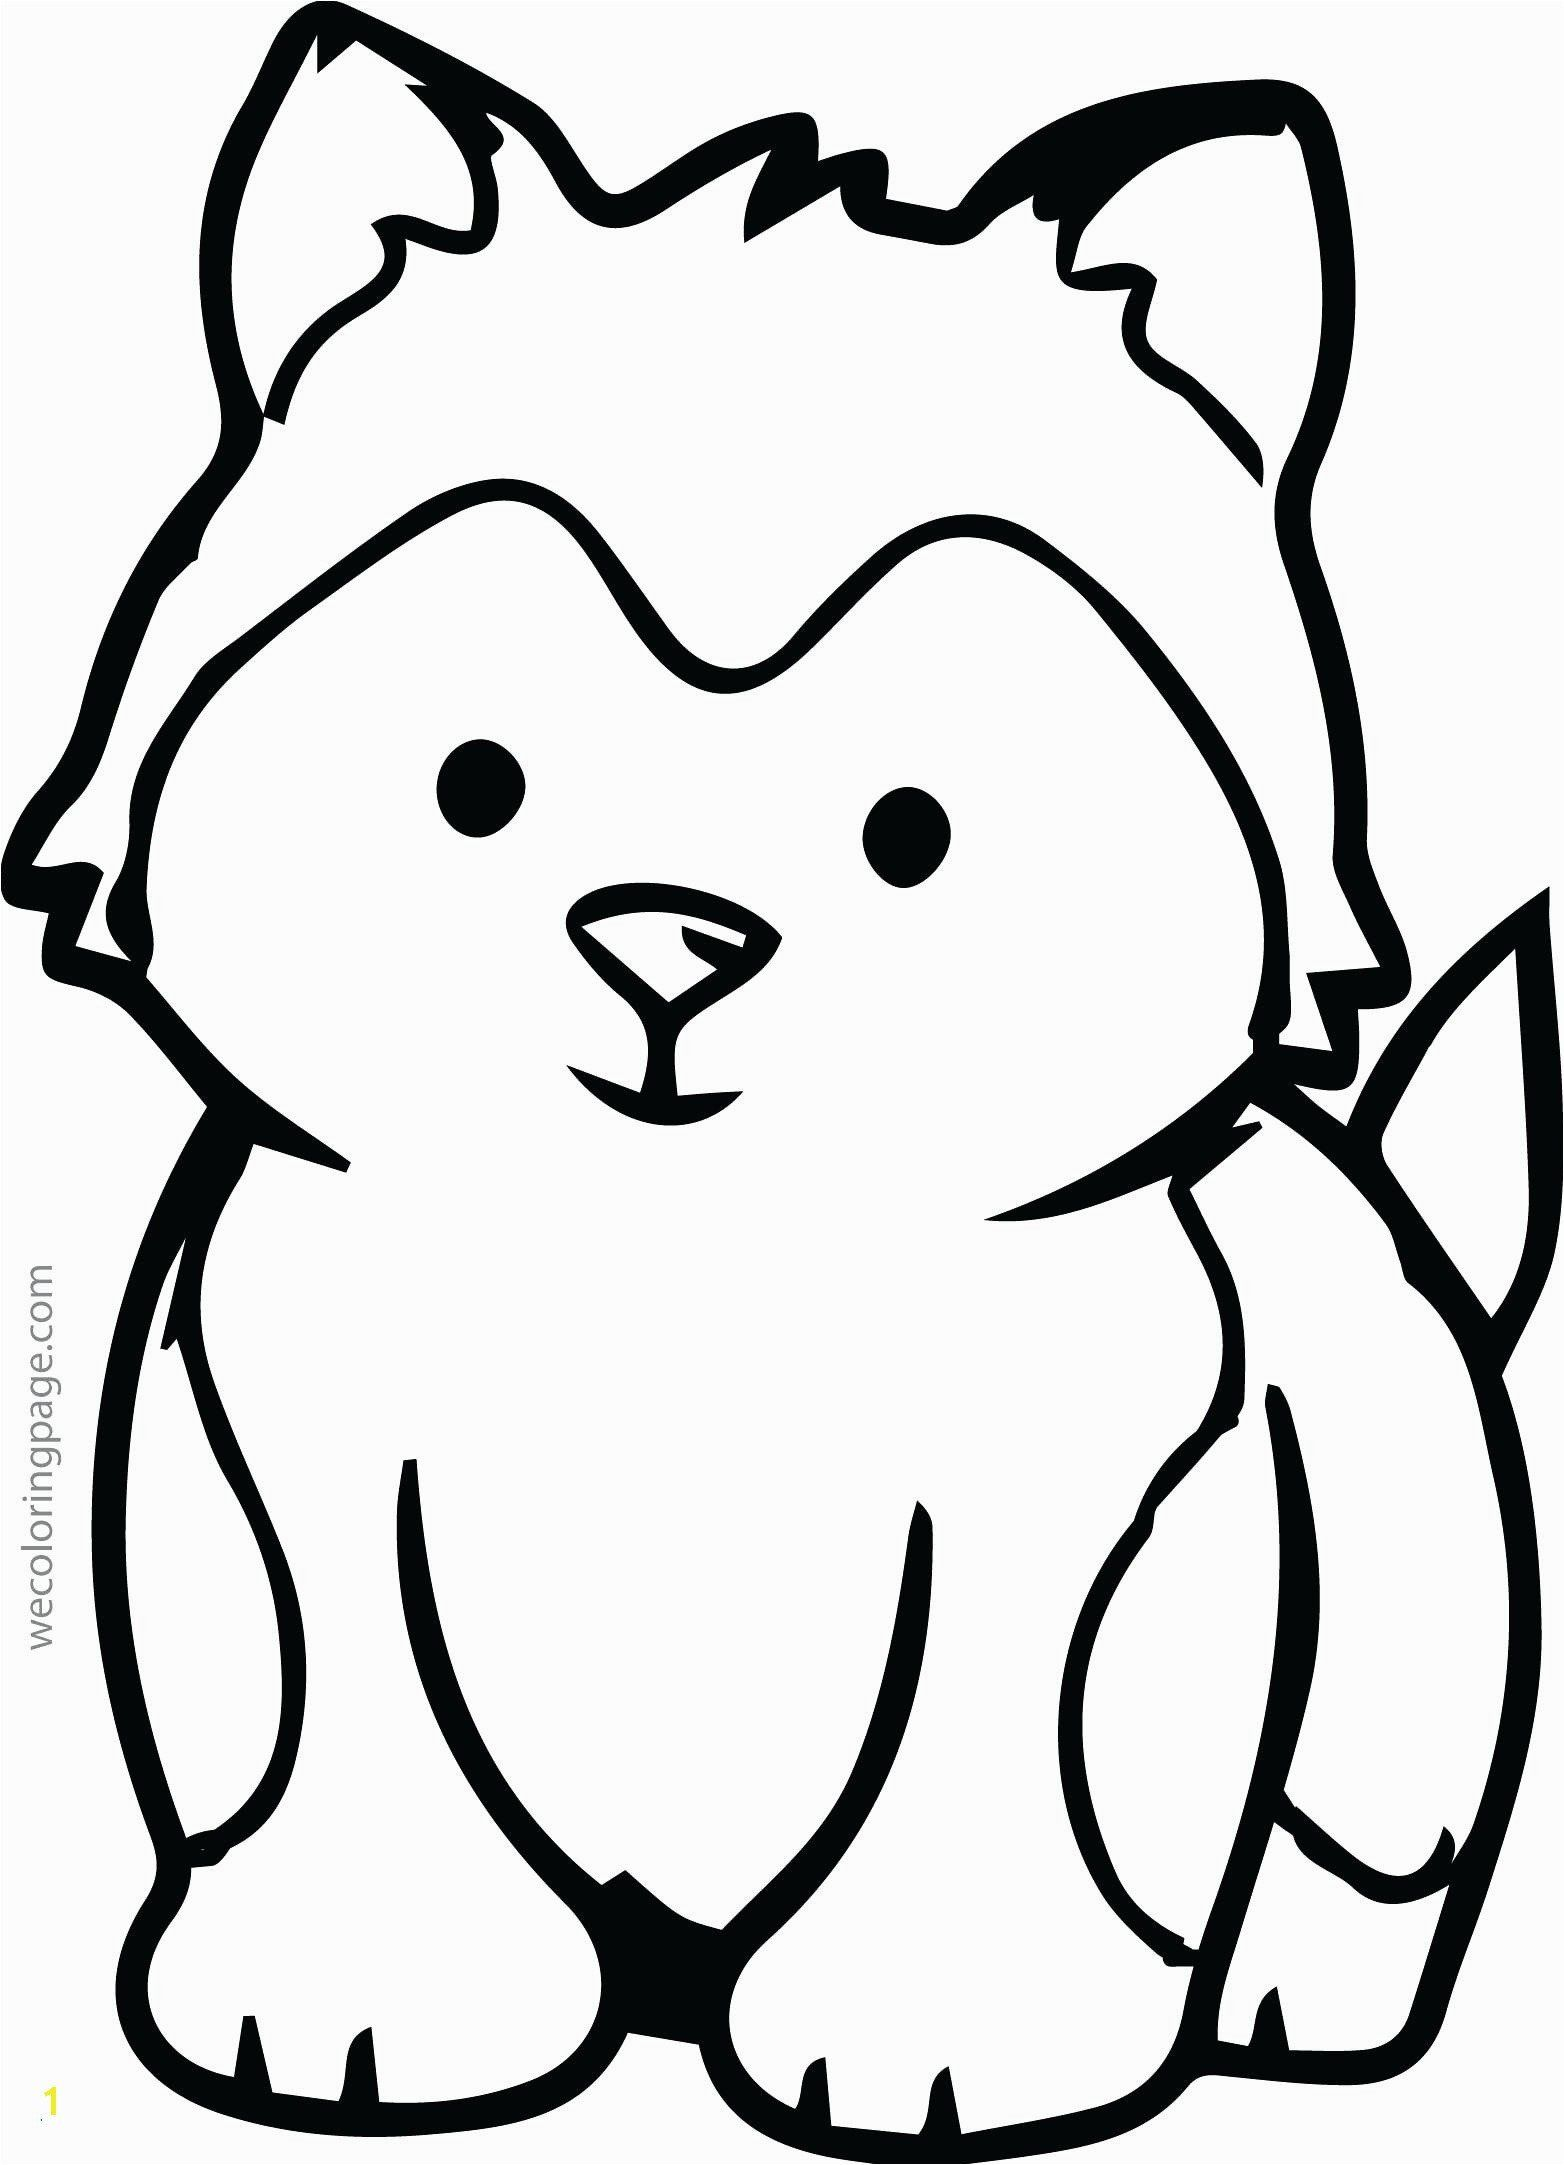 Coloring Pages Of Animals Best Of Husky Coloring Pages Farm Animal Coloring Pages Dog Coloring Page Zoo Animal Coloring Pages